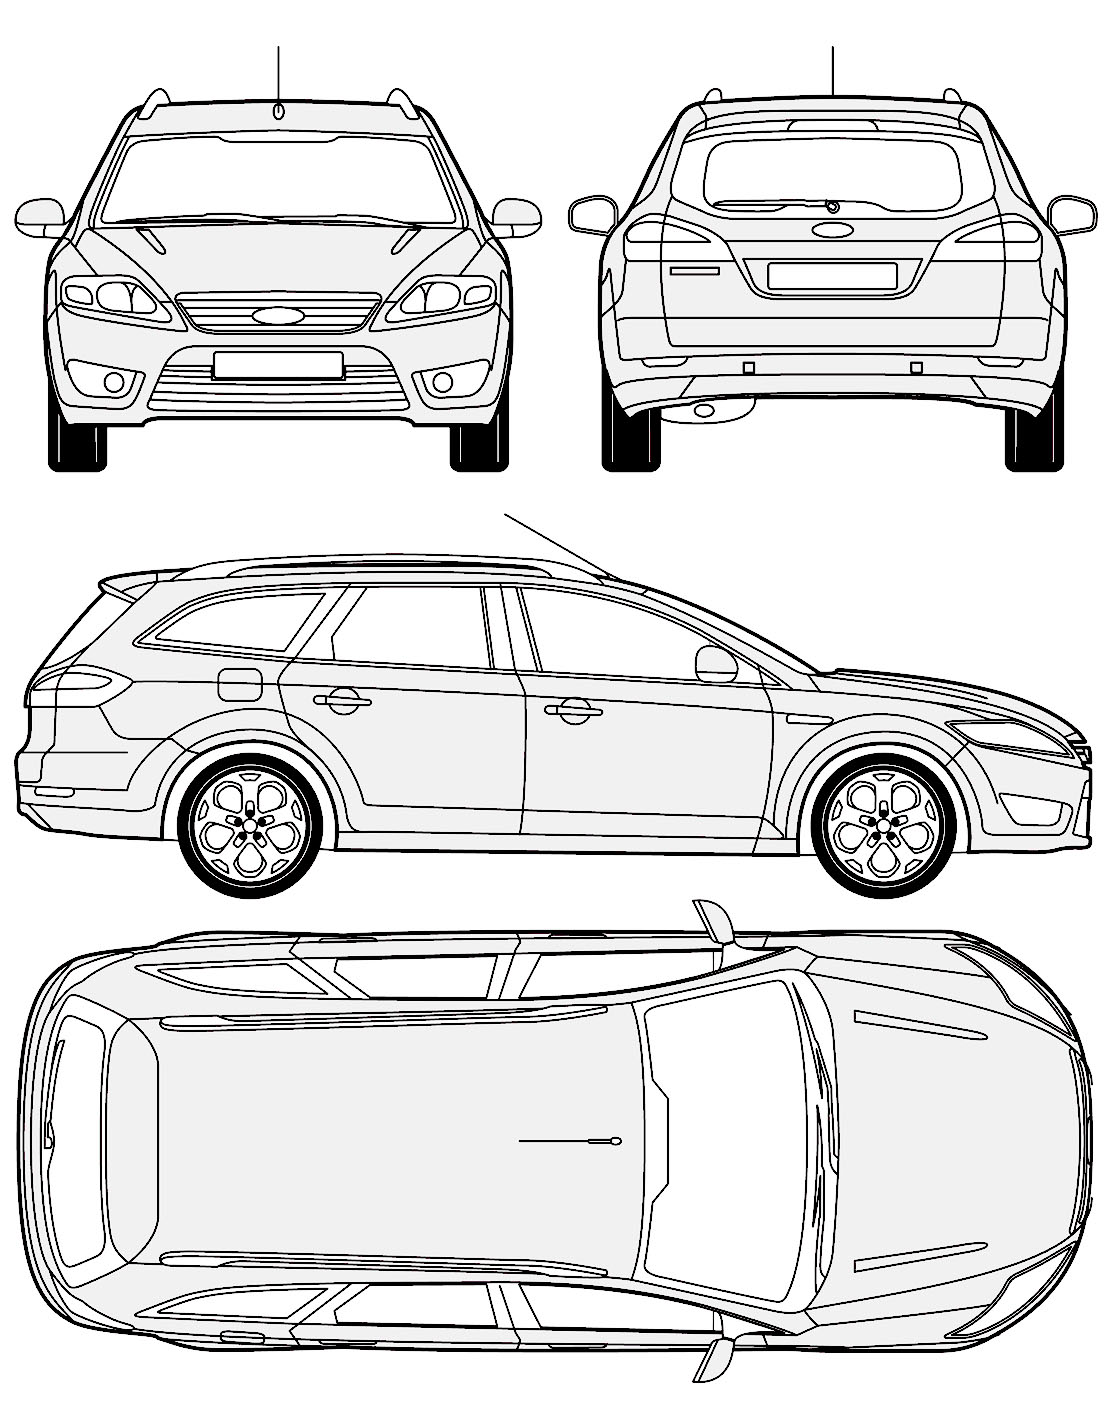 Ford mondeo blueprints